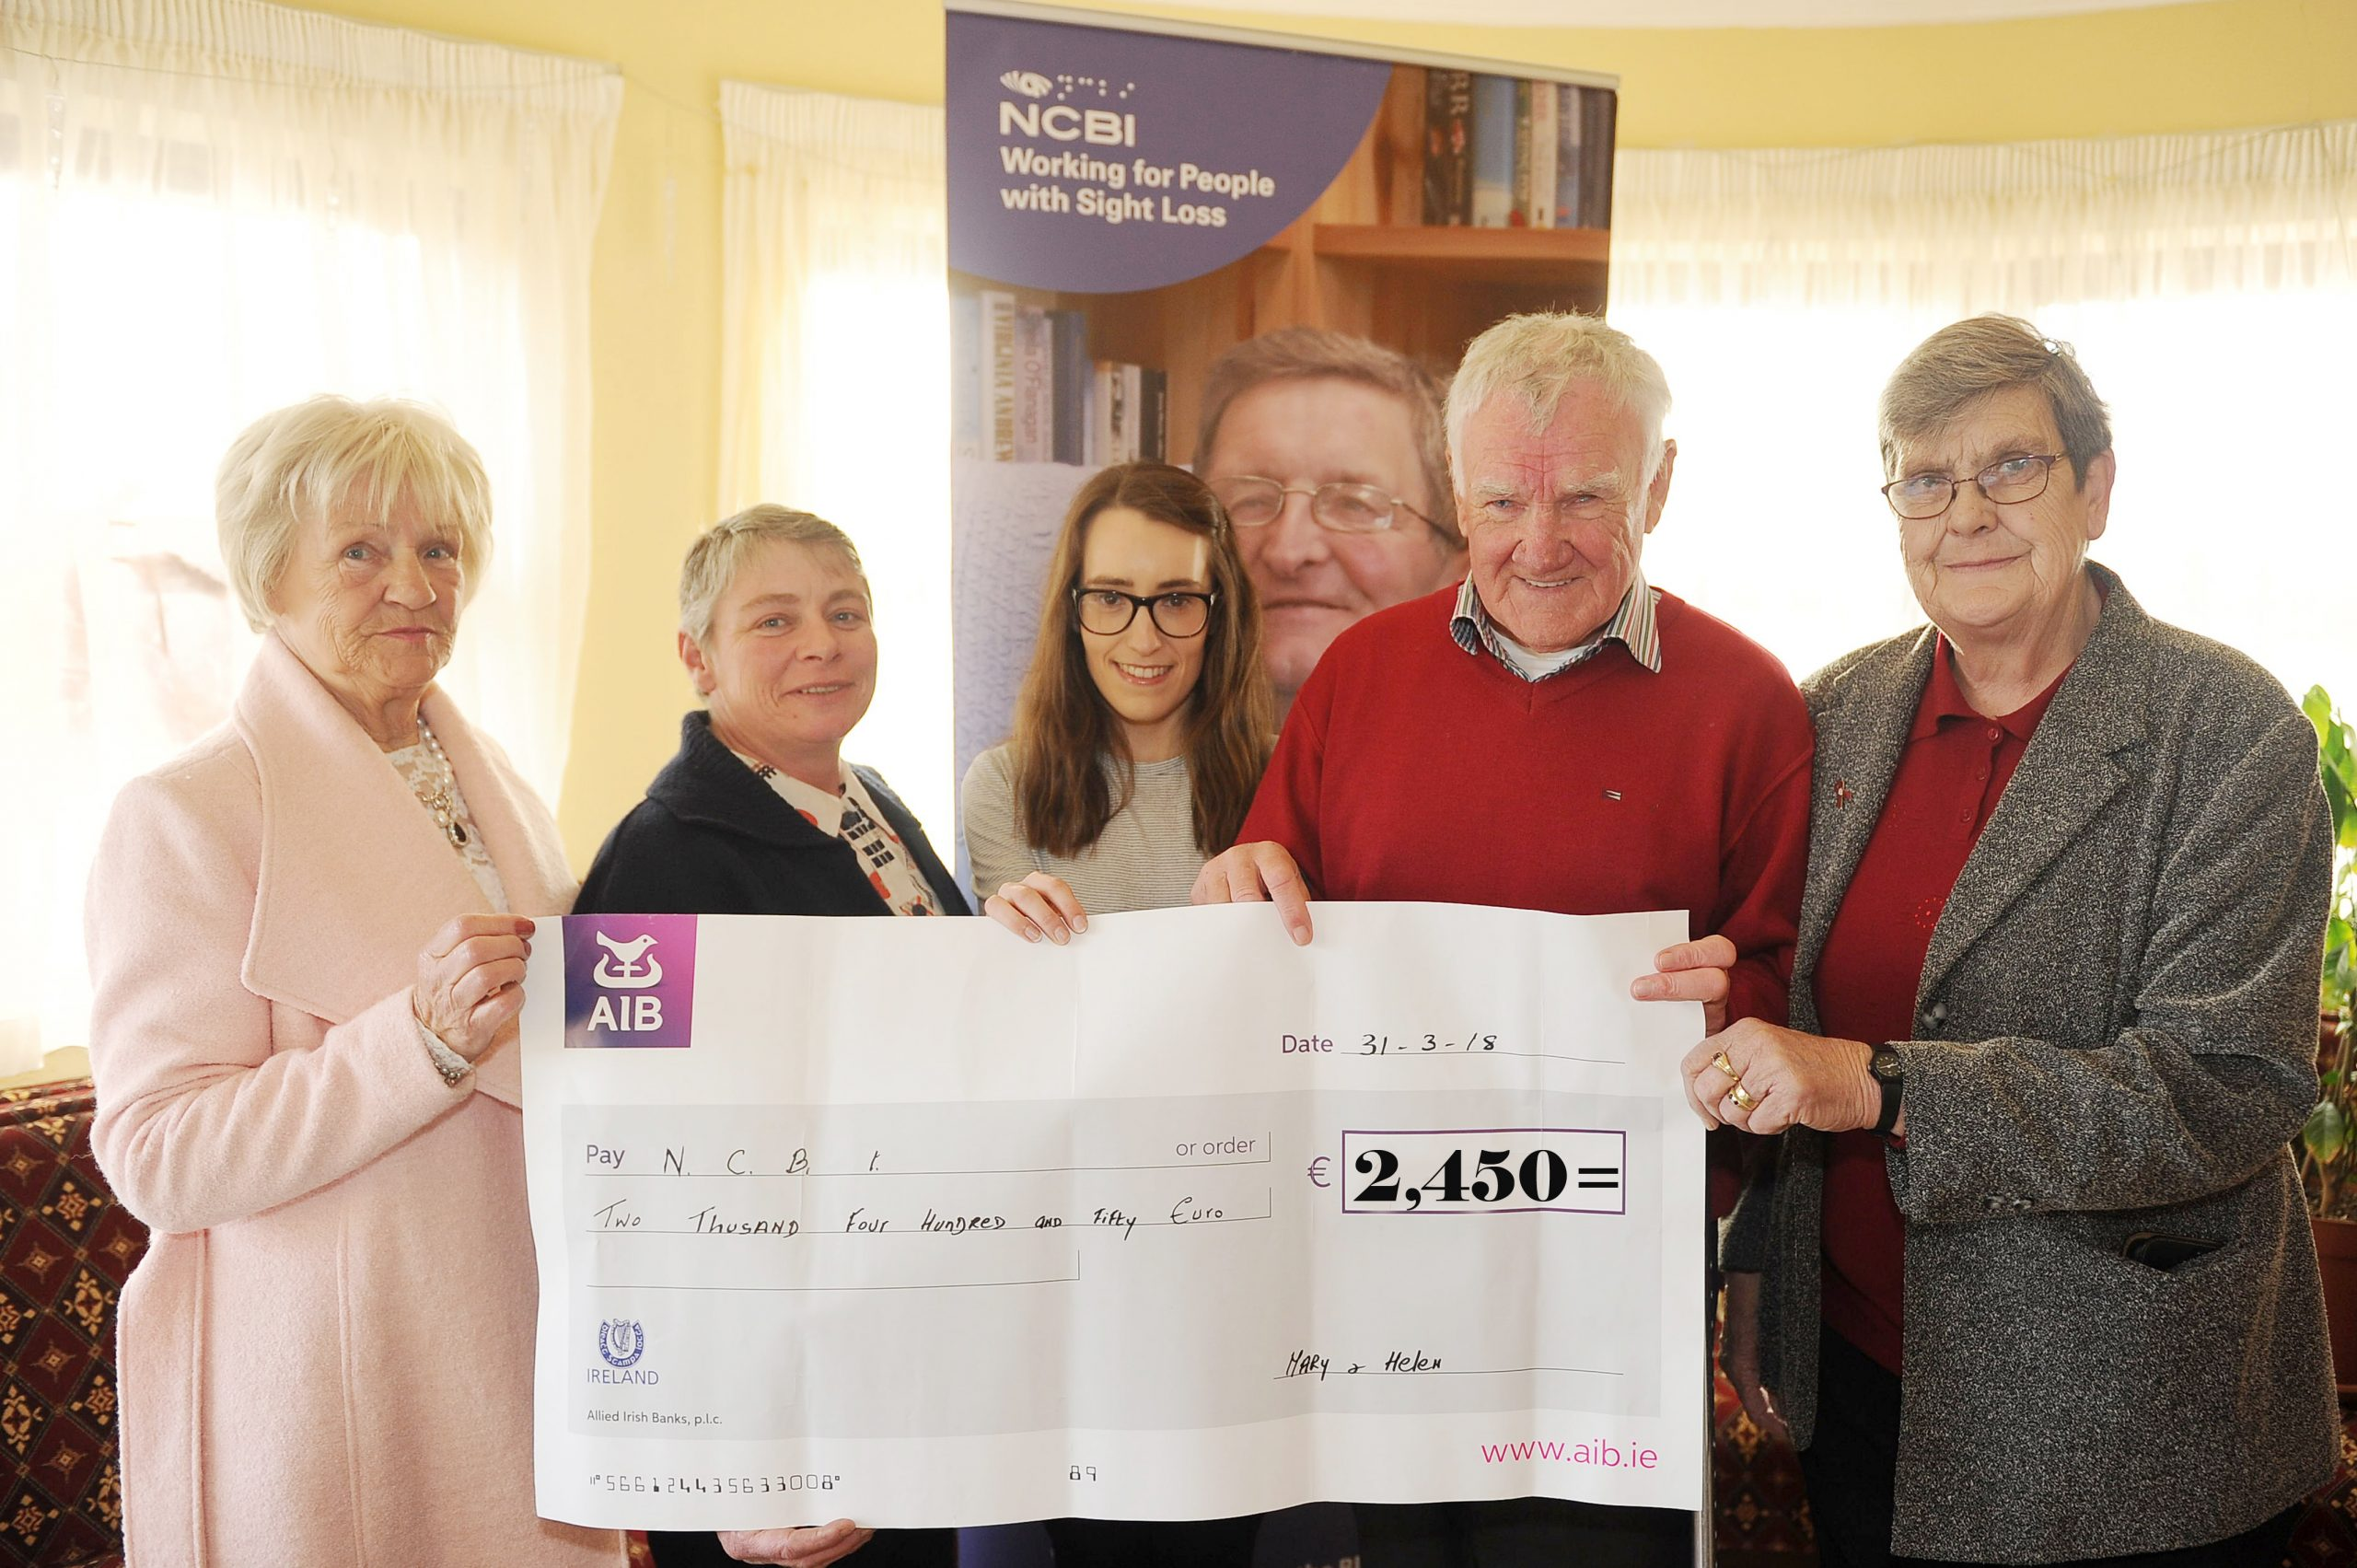 Photo is of Anne Creagh, Helen McEvoy, Lisa Connaughton, Sean Creagh and Mary Madden holding a large cheque for 2,450